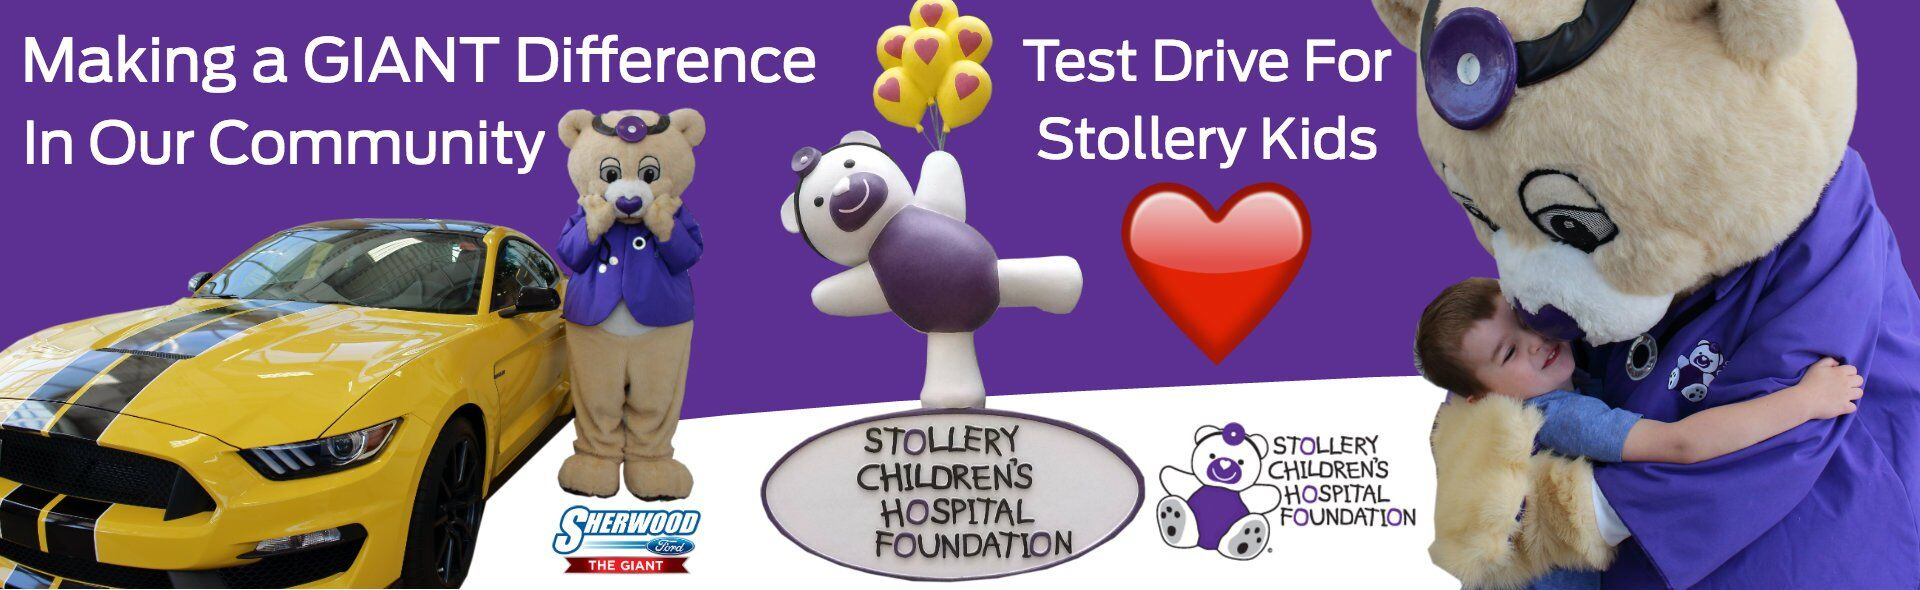 Title Sherwood Ford Stollery Kids Campaign